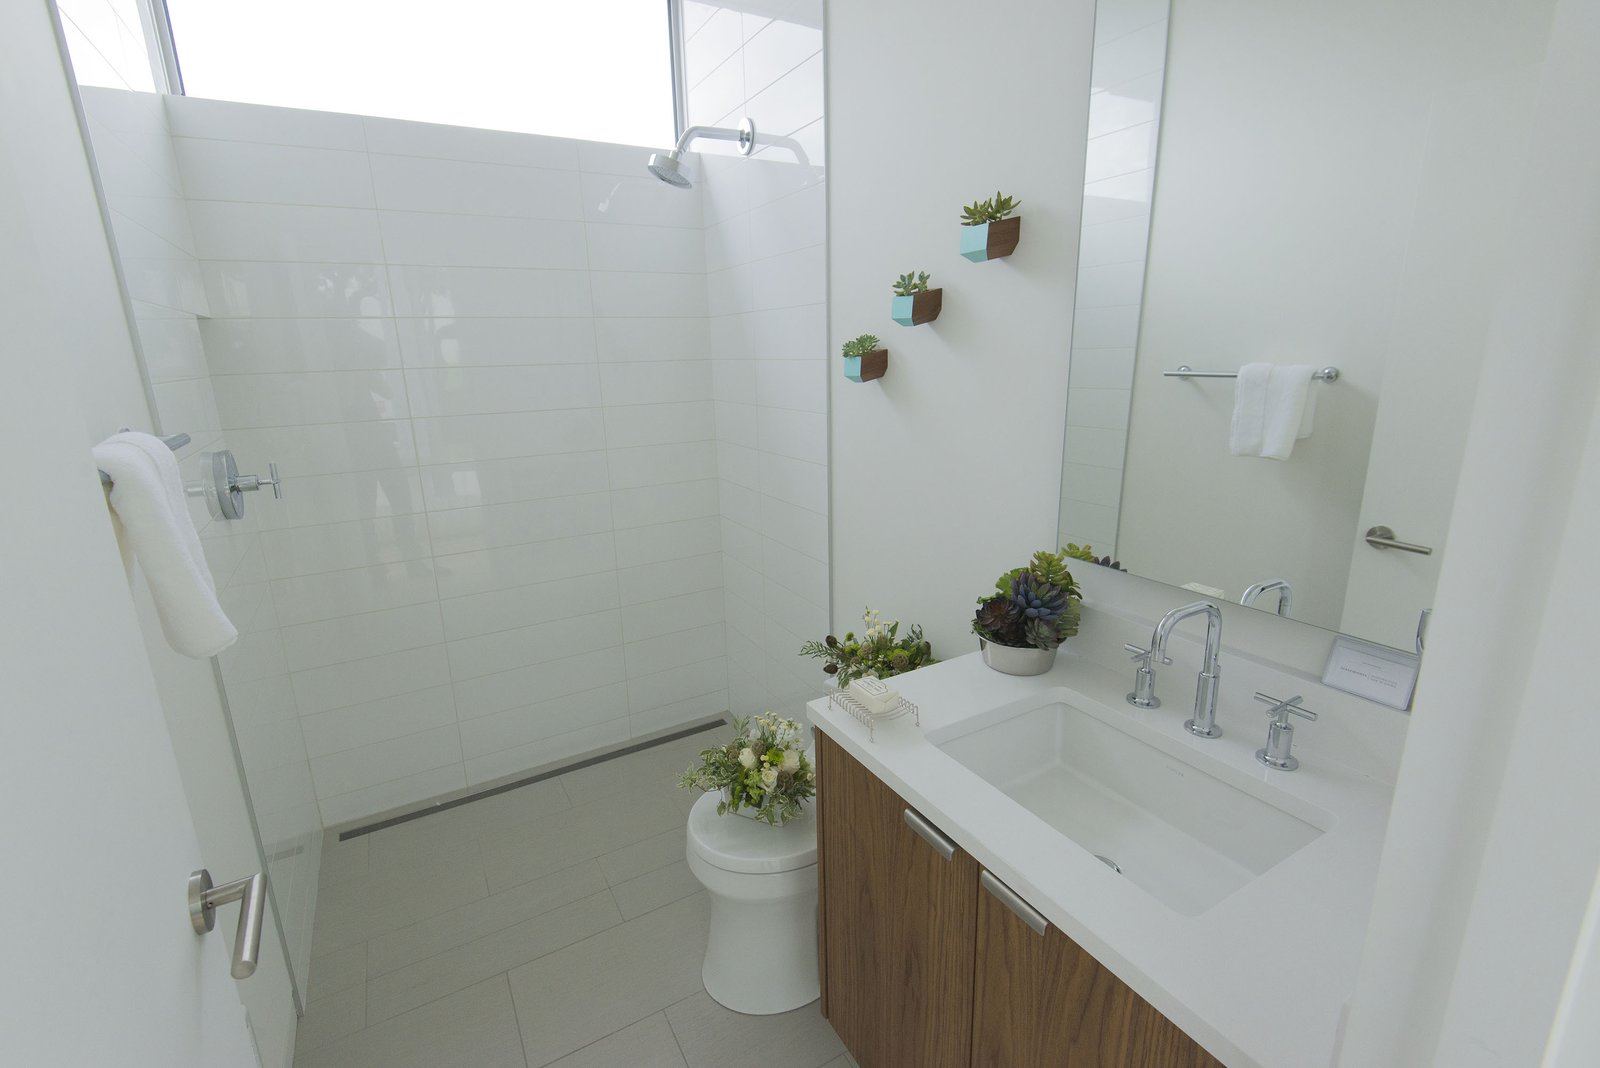 The wall and floor tile in the bathroom is from Statements Tile. The fixtures are Kohler.  Bathroom